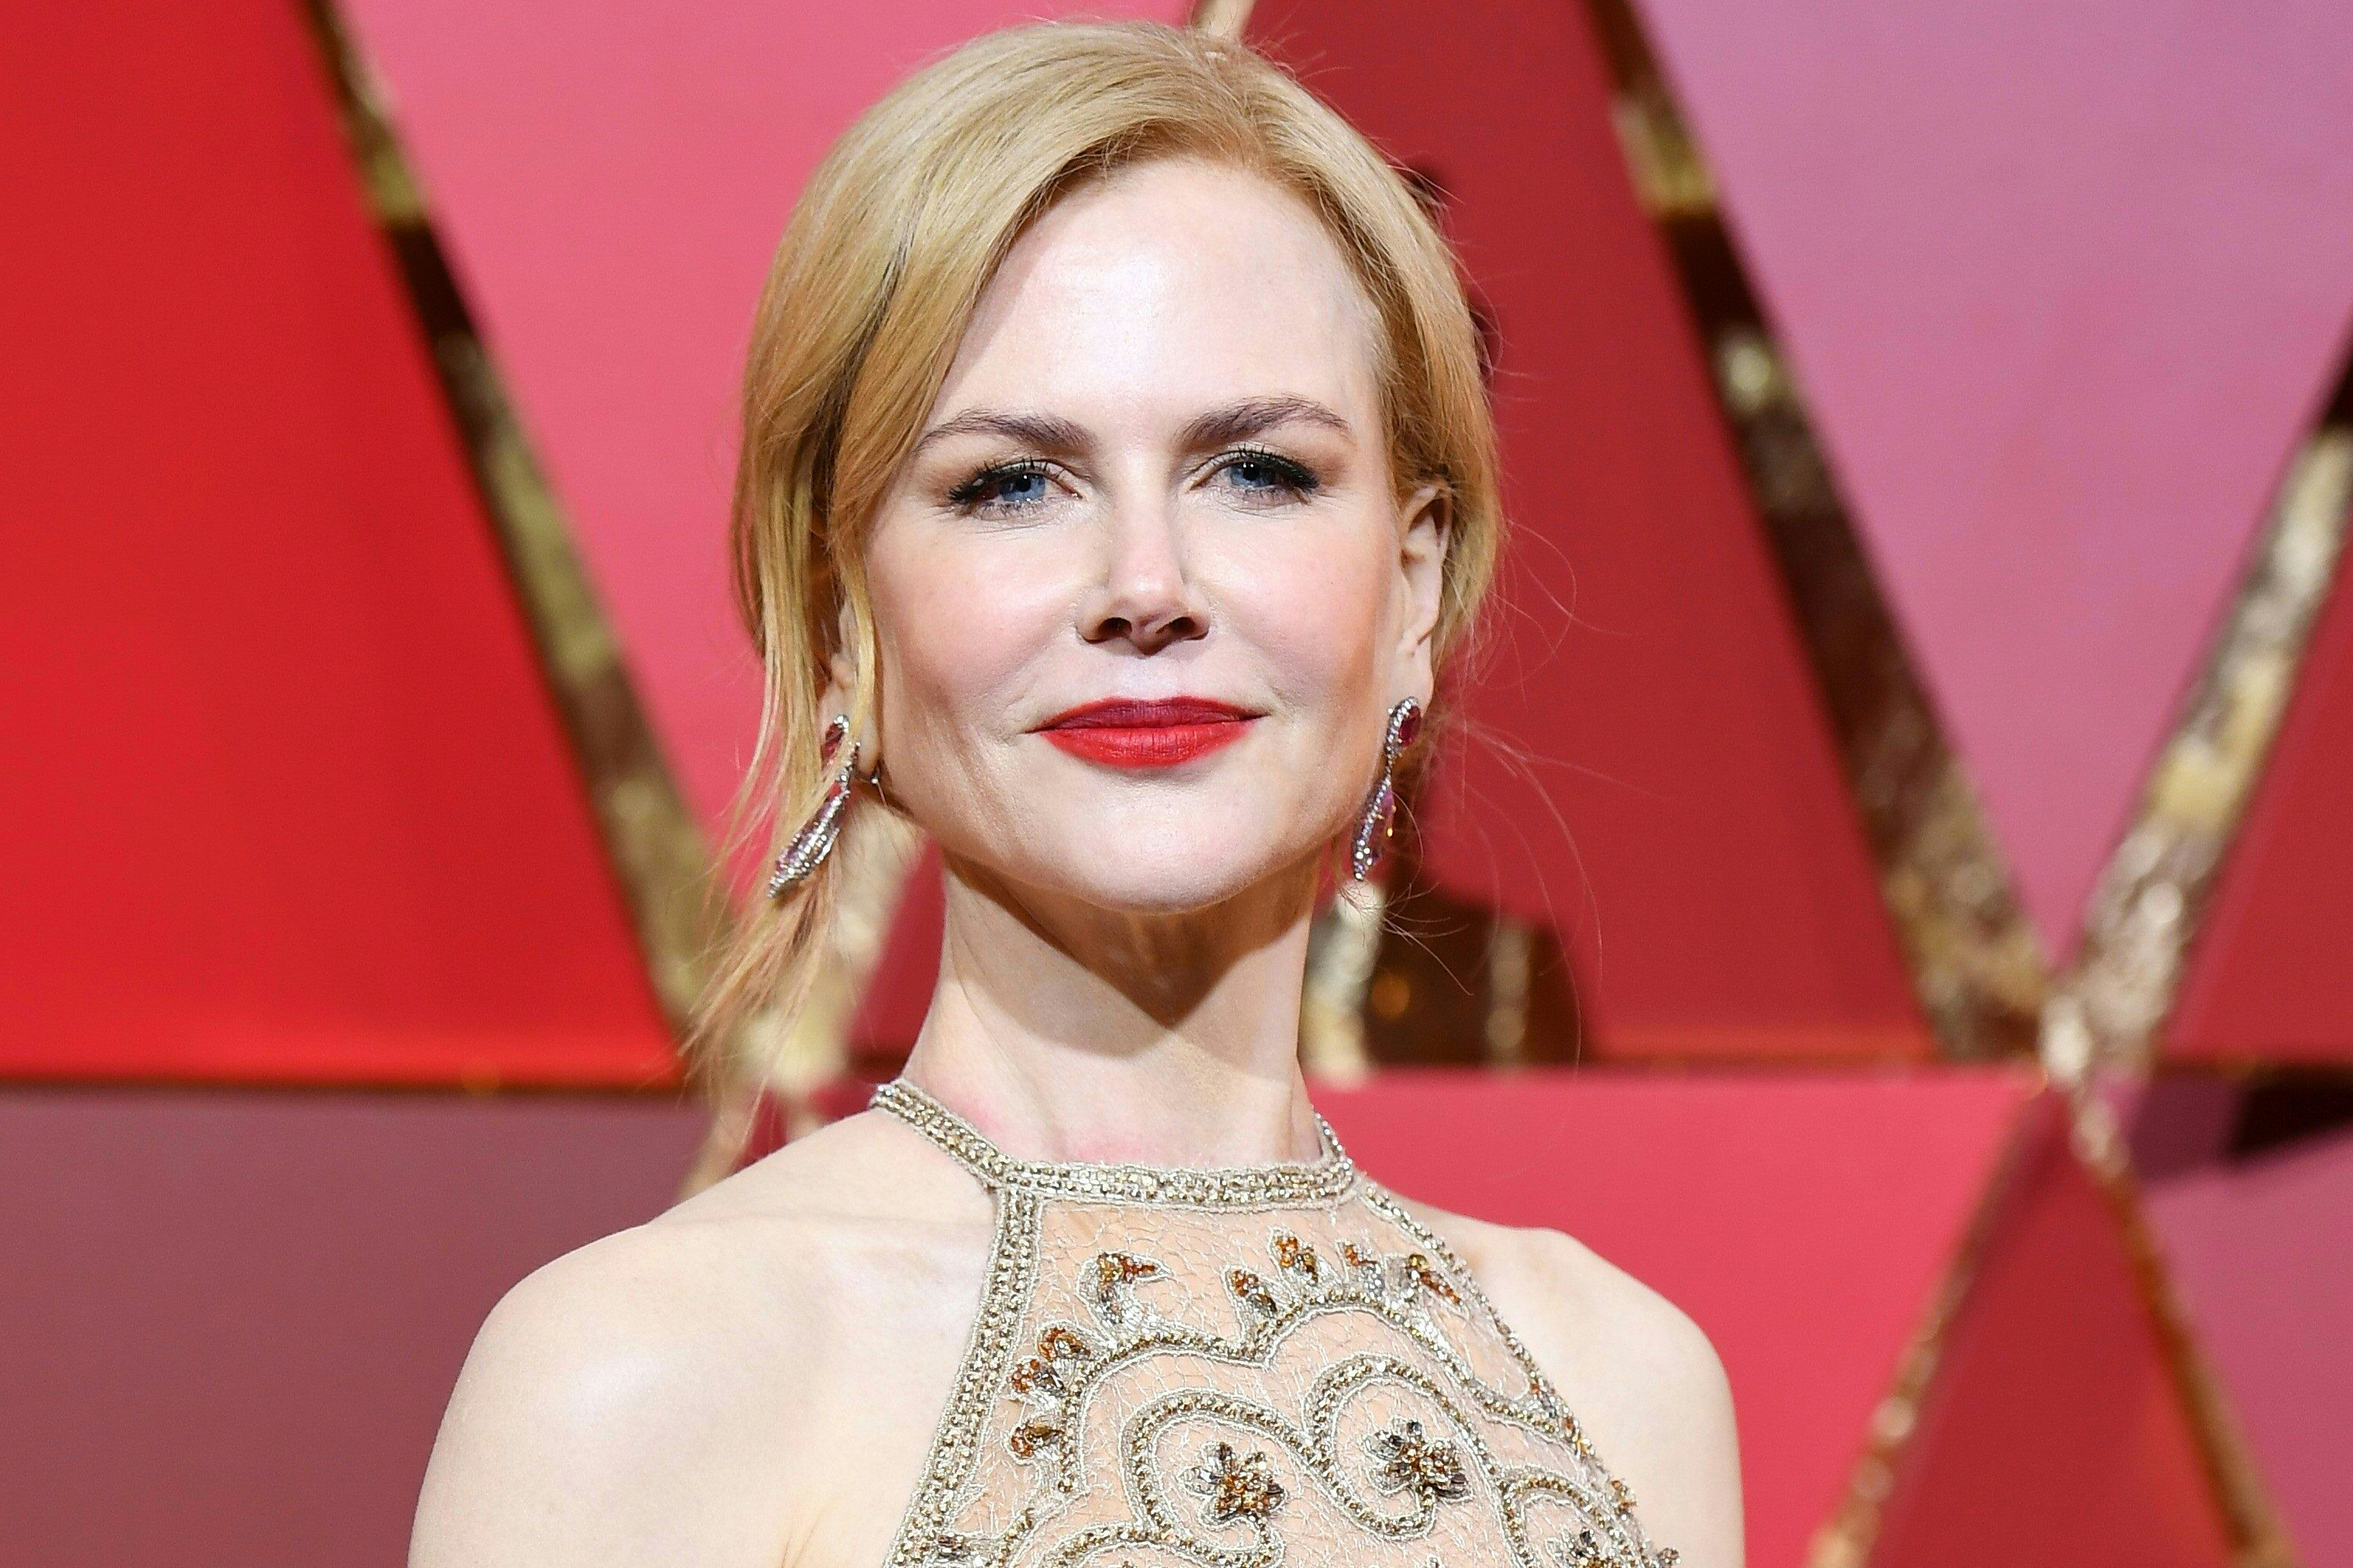 Nicole Kidman arrives on the red carpet for the 89th Oscars, on Feb. 26, 2017 in Hollywood, Calif.